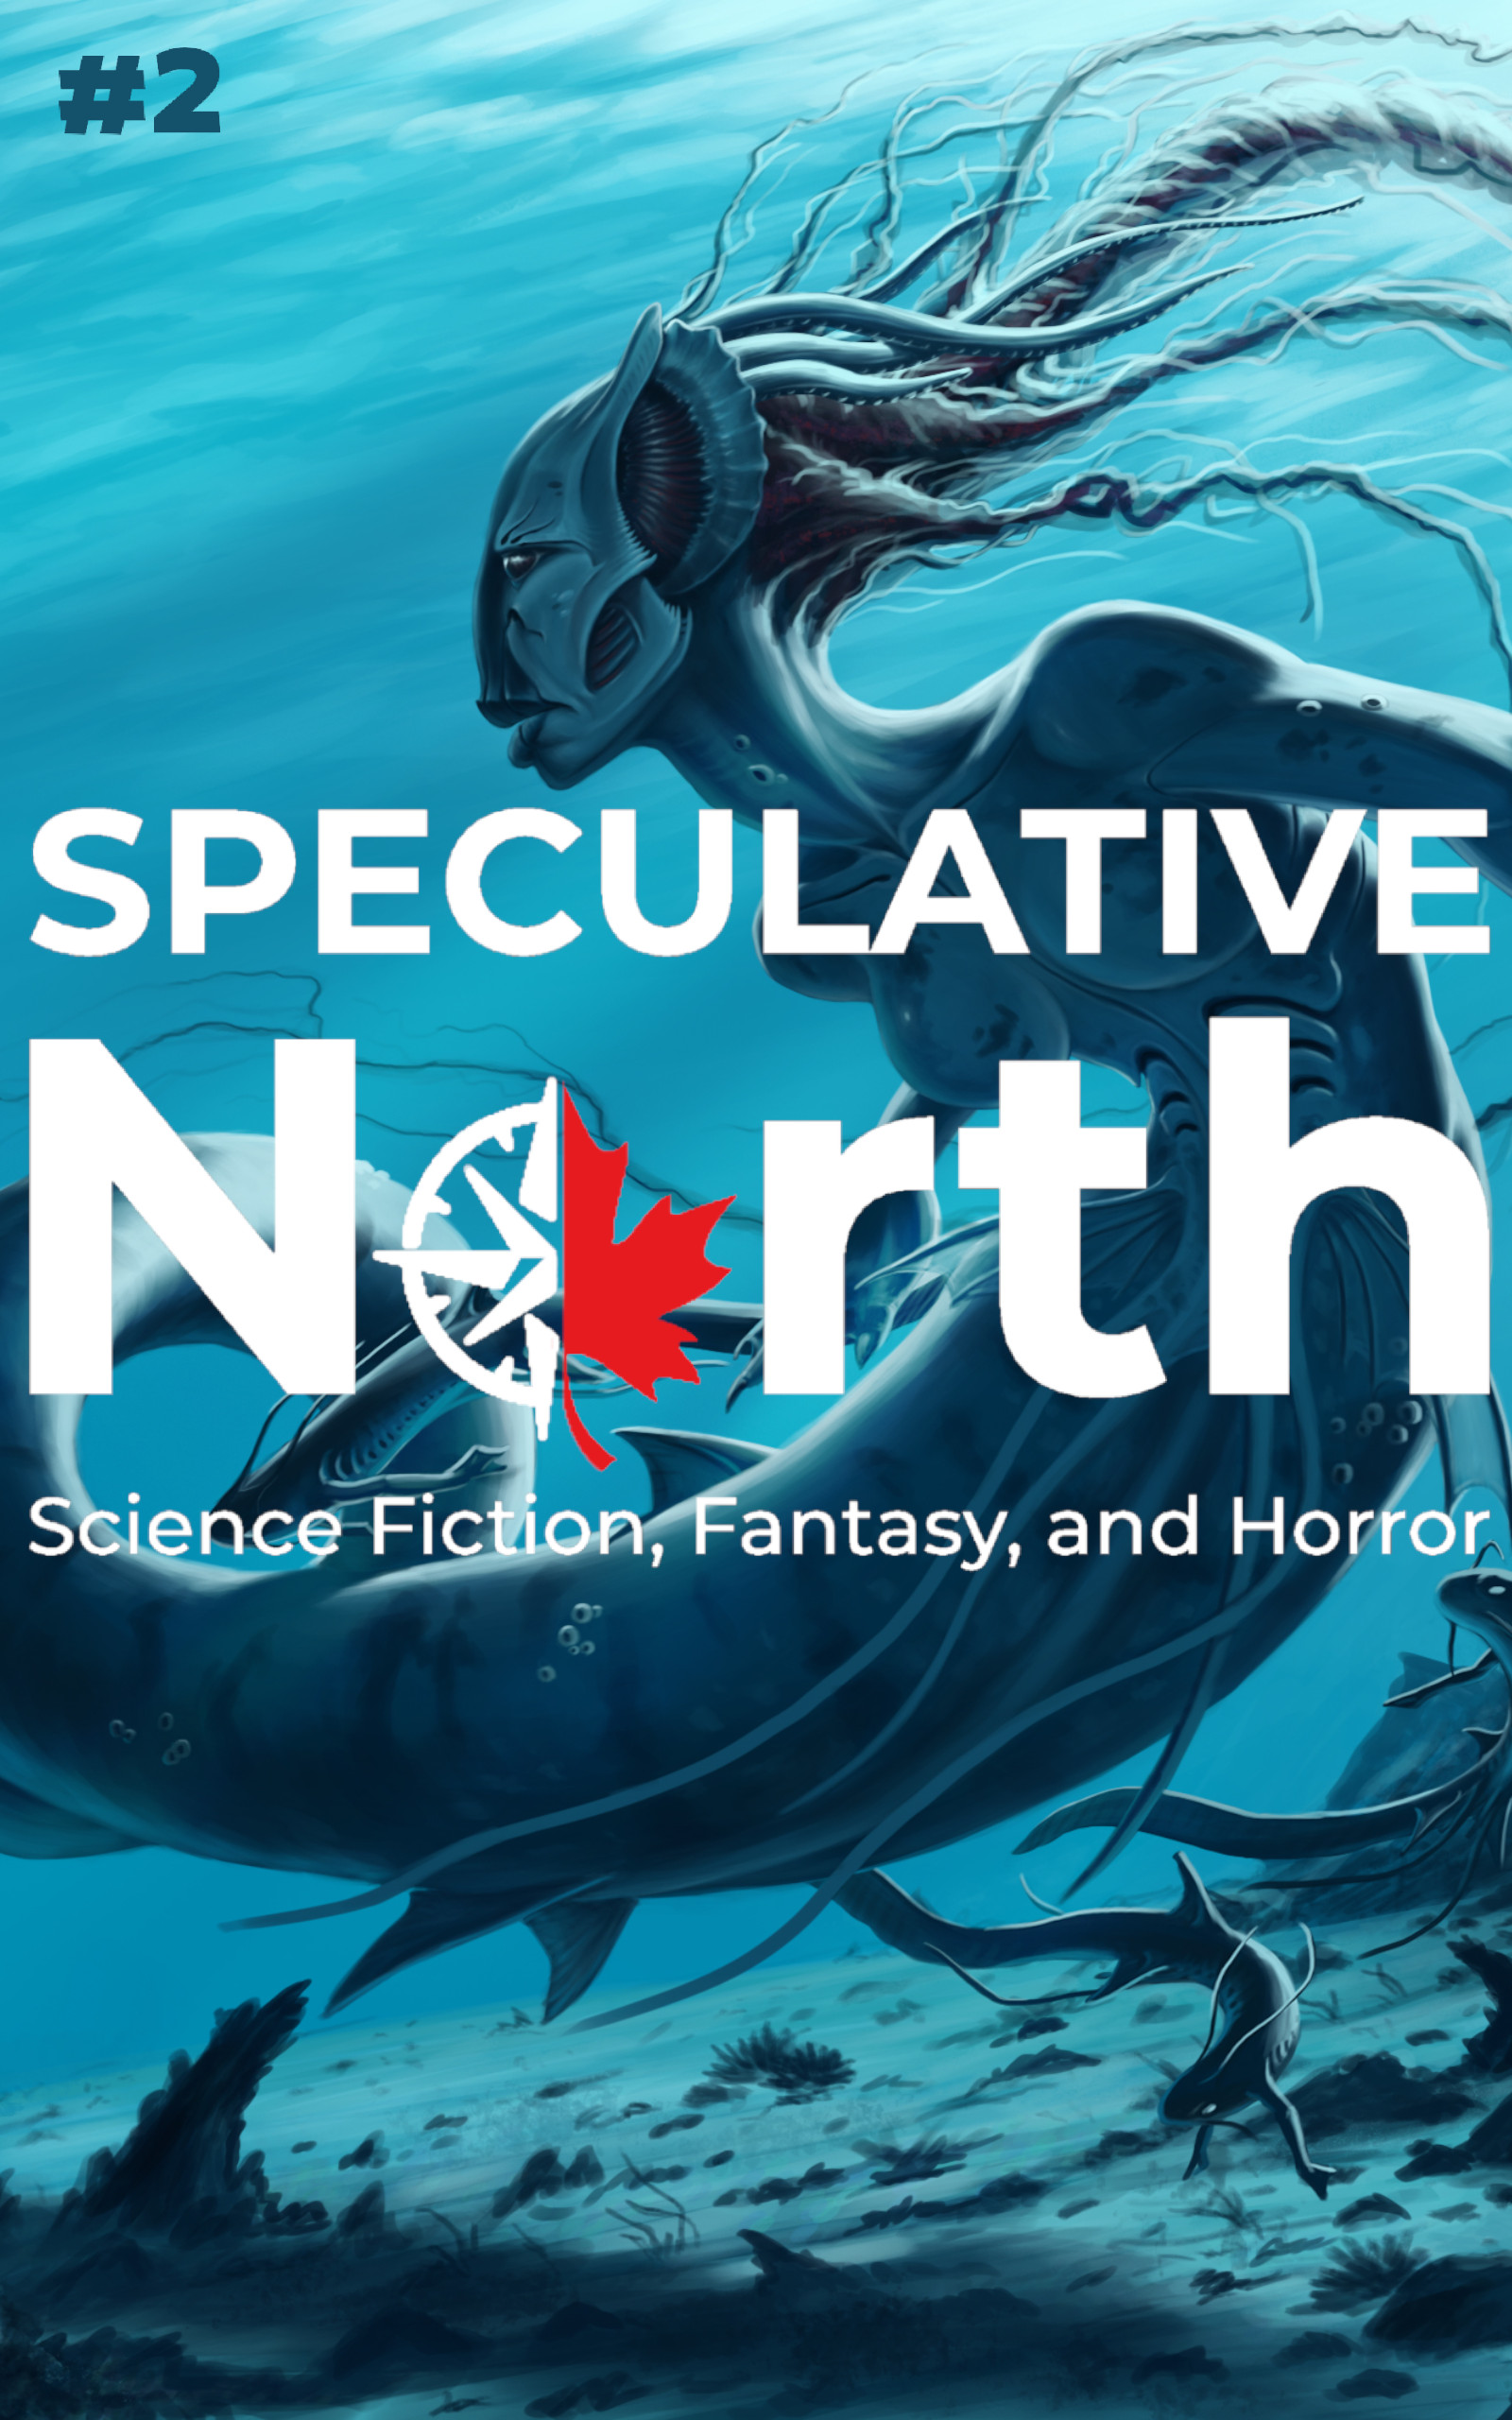 Speculative North Issue #2 ebook cover